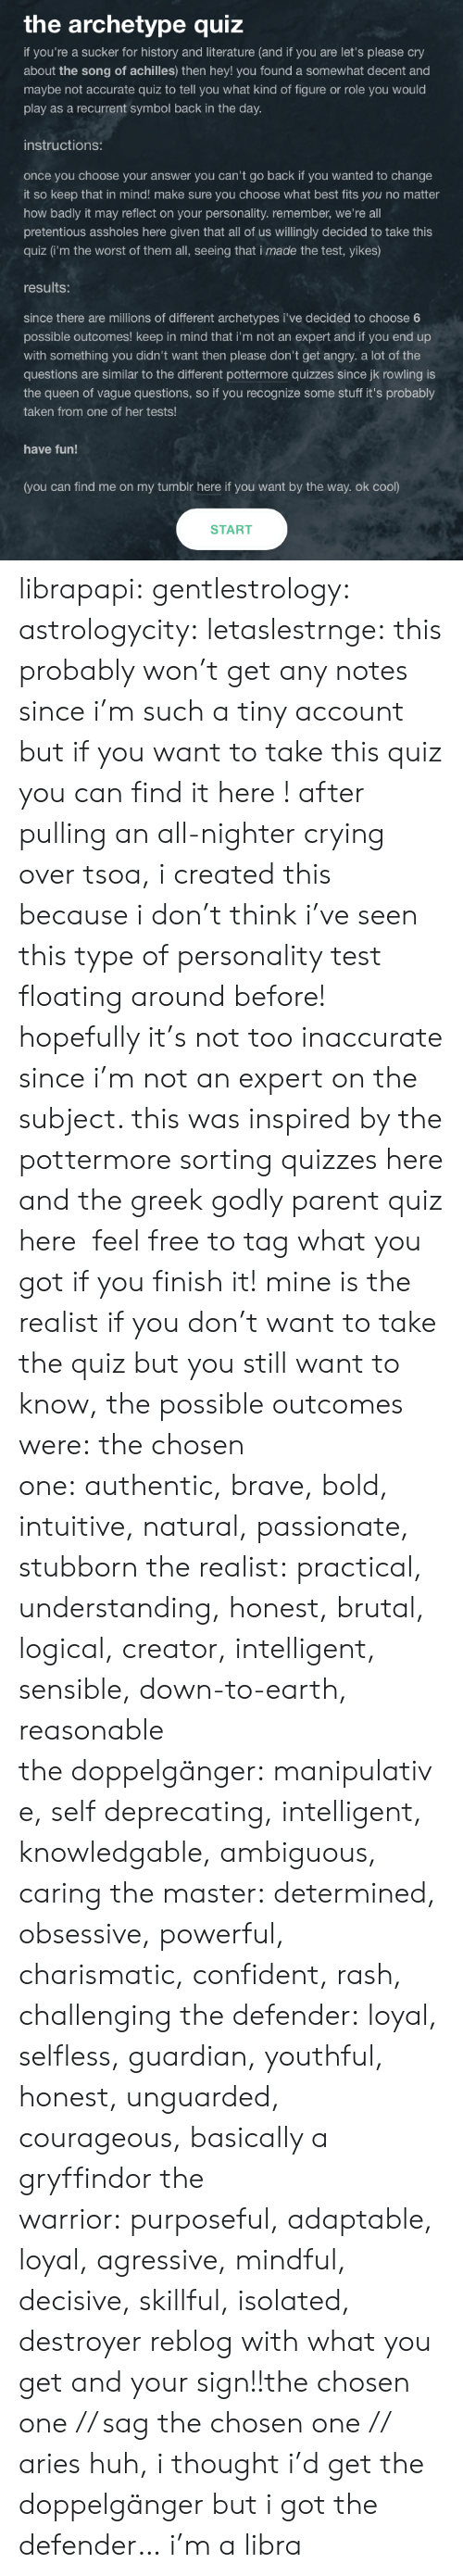 Crying, Doppelganger, and Gryffindor: the archetype quiz  if you're a sucker for history and literat u re (and if you are let's please cry  about the song of achilles) then hey! you found a somewhat decent and  maybe not accurate quiz to tell you what kind of figure or role you would  play as a recurrent symbol back in the day.  instructions:  once you choose your answer you can't go back if you wanted to change  it so keep that in mind! make sure you choose what best fits you no matter  how badly it may reflect on your personality.remember, we're all  pretentious assholes here given that all of us willingly decided to take this  quiz (i'm the worst of them all, seeing that i made the test, yikes)  results:  since there are millions of different archetypes i've decided to choose 6  possible outcomes! keep in mind that i'm not an expert and if you end up  with something you didn't want then please don't get angry. a lot of the  questions are similar to the different pottermore quizzes since jk rowling is  the queen of vague questions, so if you recognize some stuff it's probably  taken from one of her tests!  have fun!  (you can find me on my tumblr here if you want by the way. ok cool)  START librapapi:  gentlestrology:   astrologycity:  letaslestrnge:  this probably won't get any notes since i'm such a tiny account but if you want to take this quiz you can find it here ! after pulling an all-nighter crying over tsoa, i created this because i don't think i've seen this type of personality test floating around before! hopefully it's not too inaccurate since i'm not an expert on the subject. this was inspired by the pottermore sorting quizzes here and the greek godly parent quiz here  feel free to tag what you got if you finish it! mine is the realist if you don't want to take the quiz but you still want to know, the possible outcomes were:  the chosen one: authentic, brave, bold, intuitive, natural, passionate, stubborn the realist: practical, understanding, honest, brutal, logical, creator, intelligent, sensible, down-to-earth, reasonable the doppelgänger: manipulative, self deprecating, intelligent, knowledgable, ambiguous, caring the master: determined, obsessive, powerful, charismatic, confident, rash, challenging the defender: loyal, selfless, guardian, youthful, honest, unguarded, courageous, basically a gryffindor the warrior: purposeful, adaptable, loyal, agressive, mindful, decisive, skillful, isolated, destroyer    reblog with what you get and your sign!!the chosen one // sag  the chosen one // aries   huh, i thought i'd get the doppelgänger but i got the defender… i'm a libra